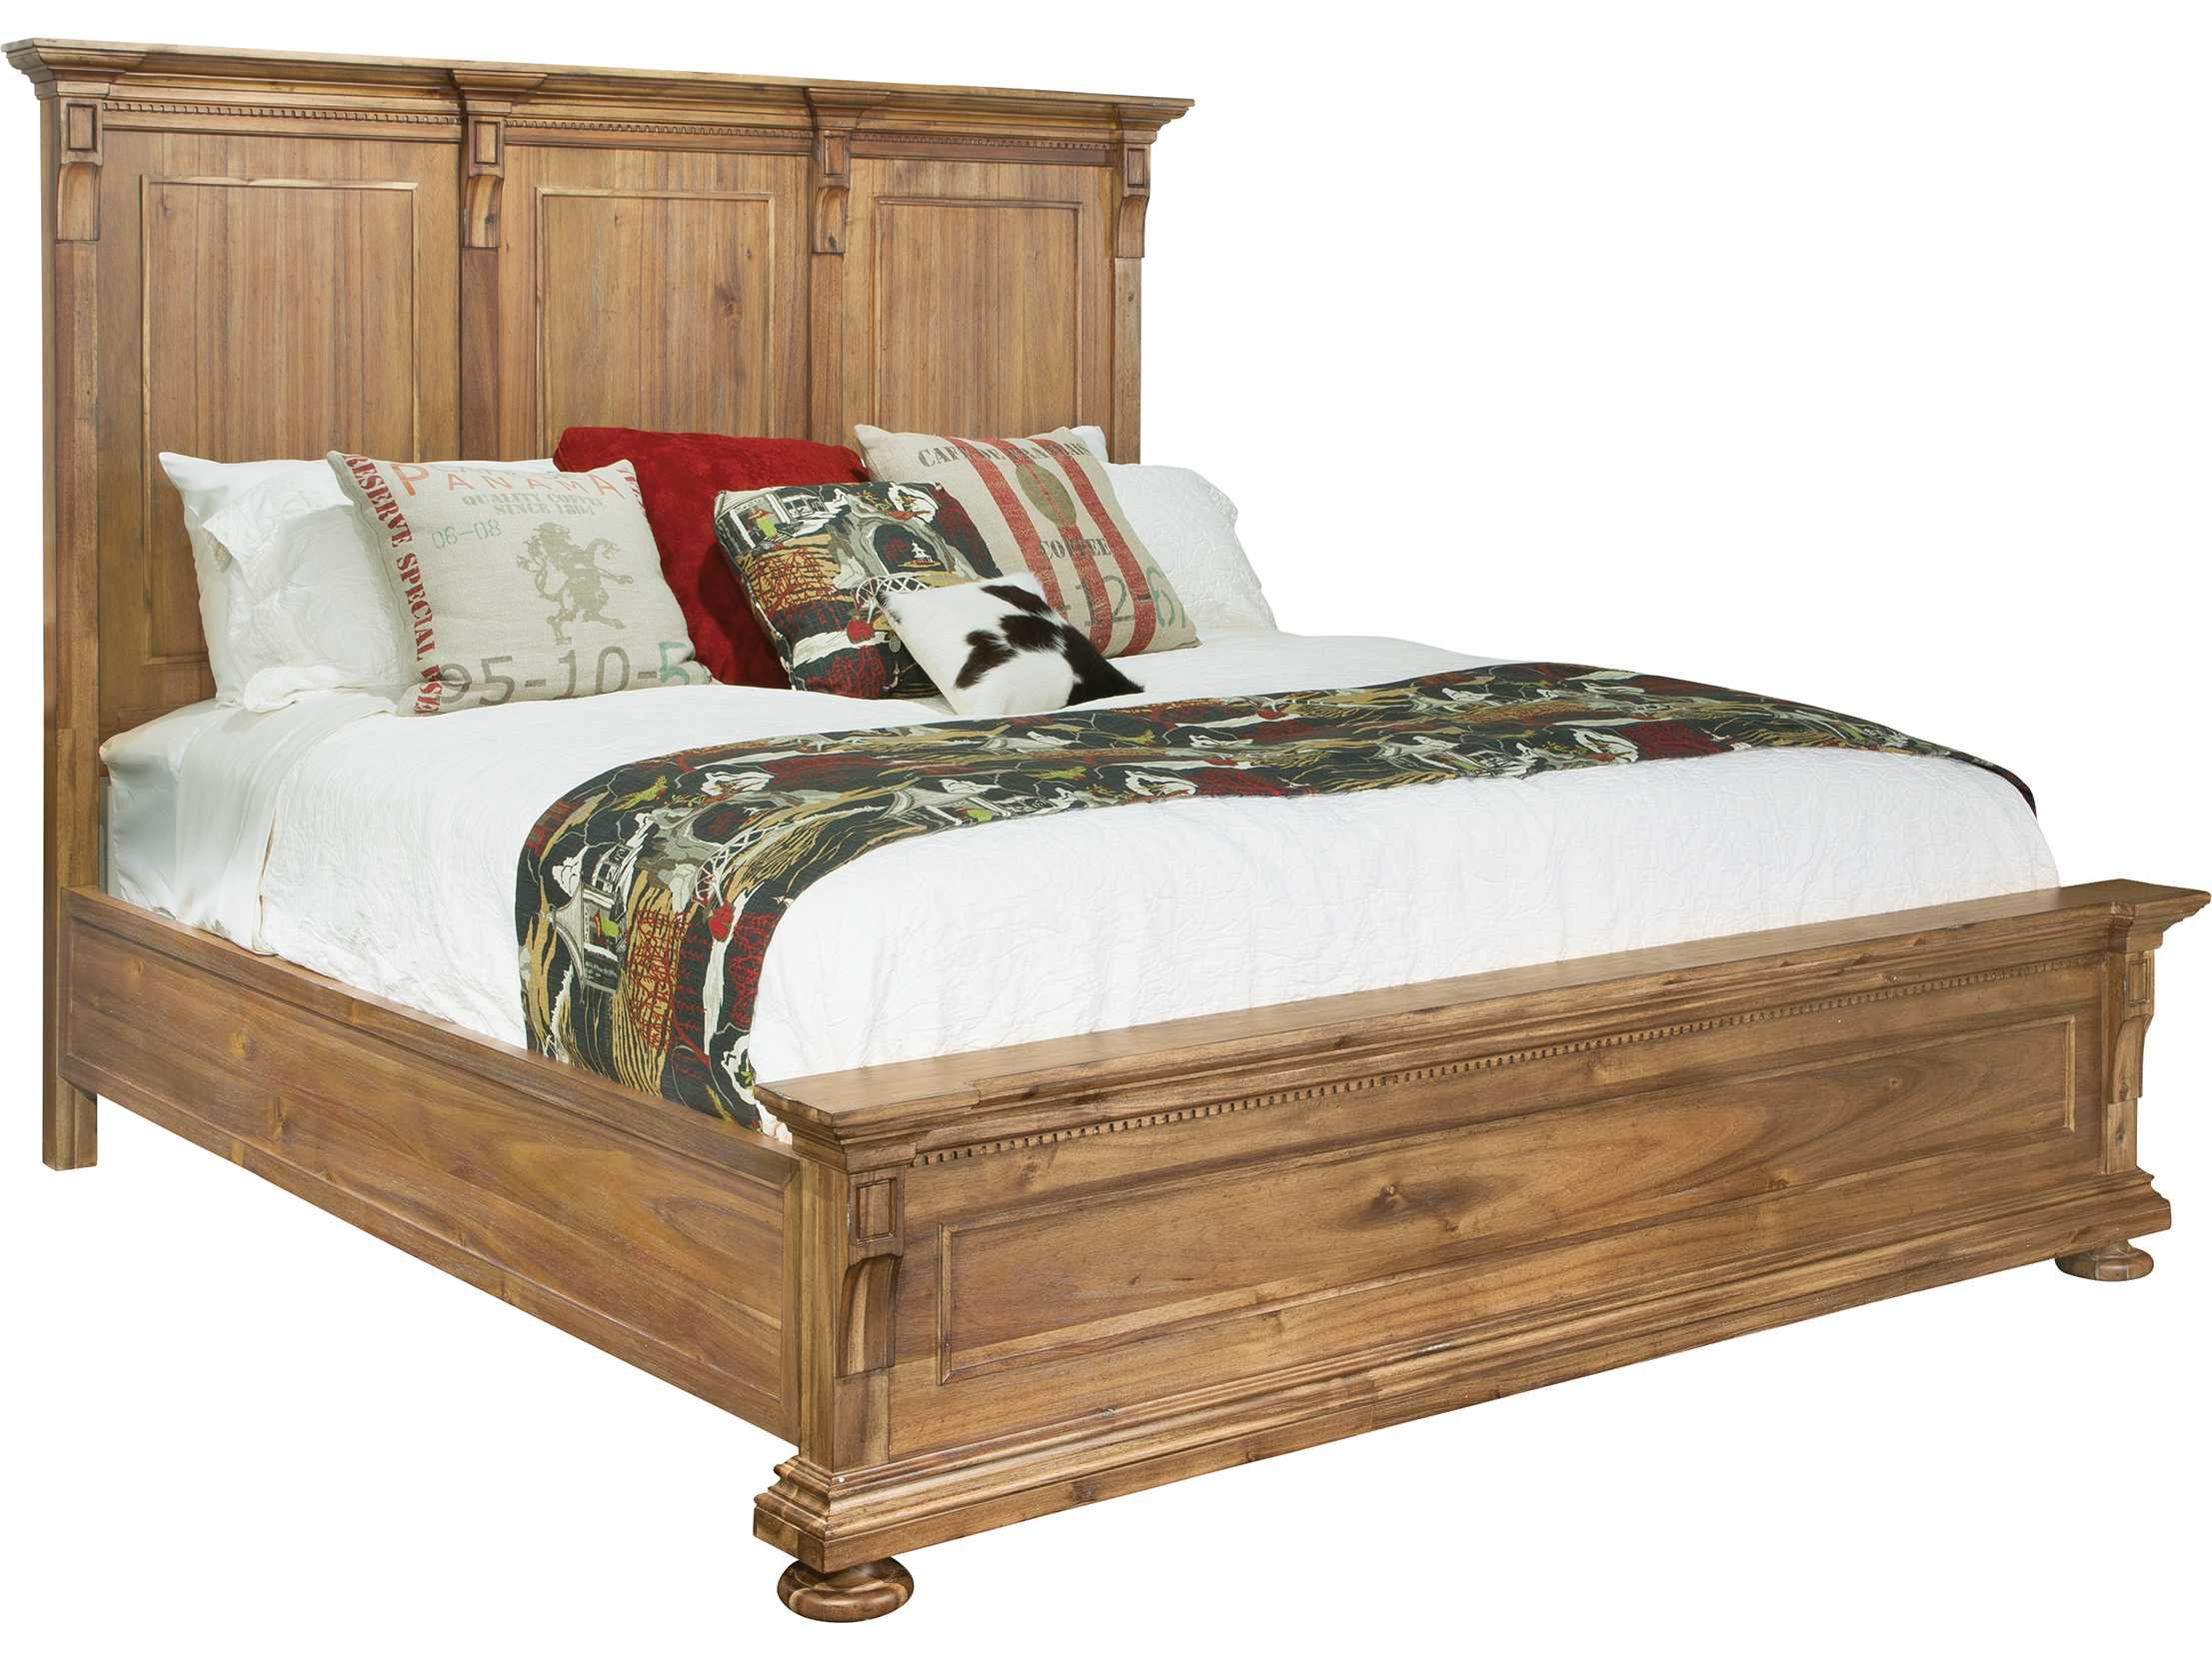 Hekman wellington hall queen panel bed hk23365 for Beds wellington